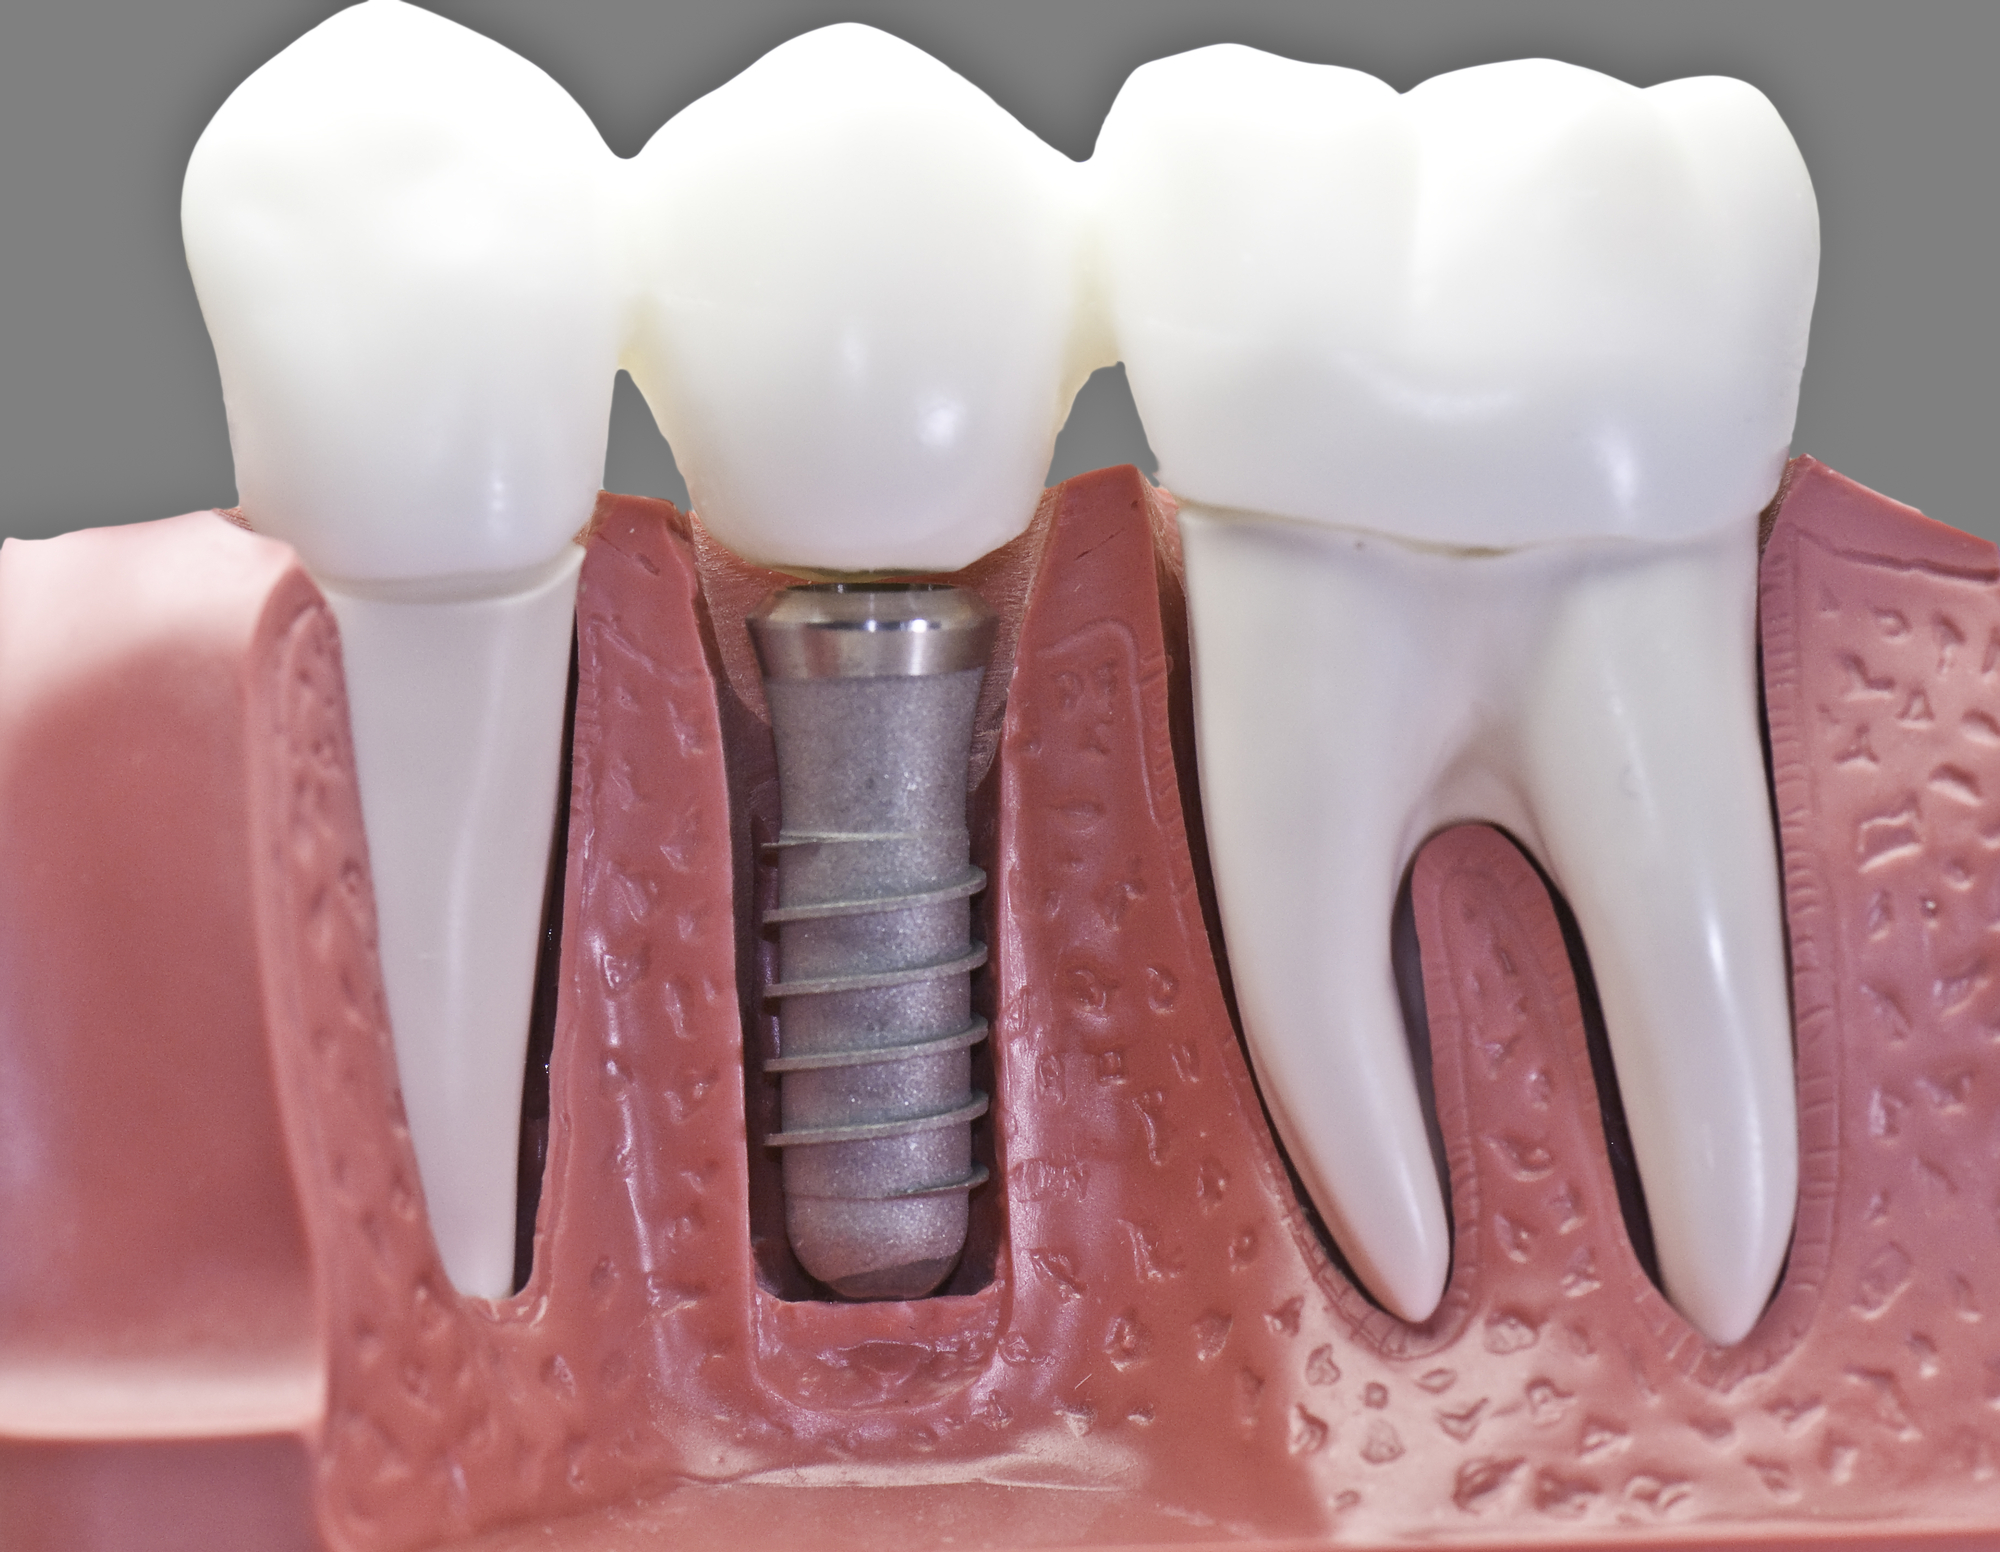 The Pros and Cons of a Dental Implant